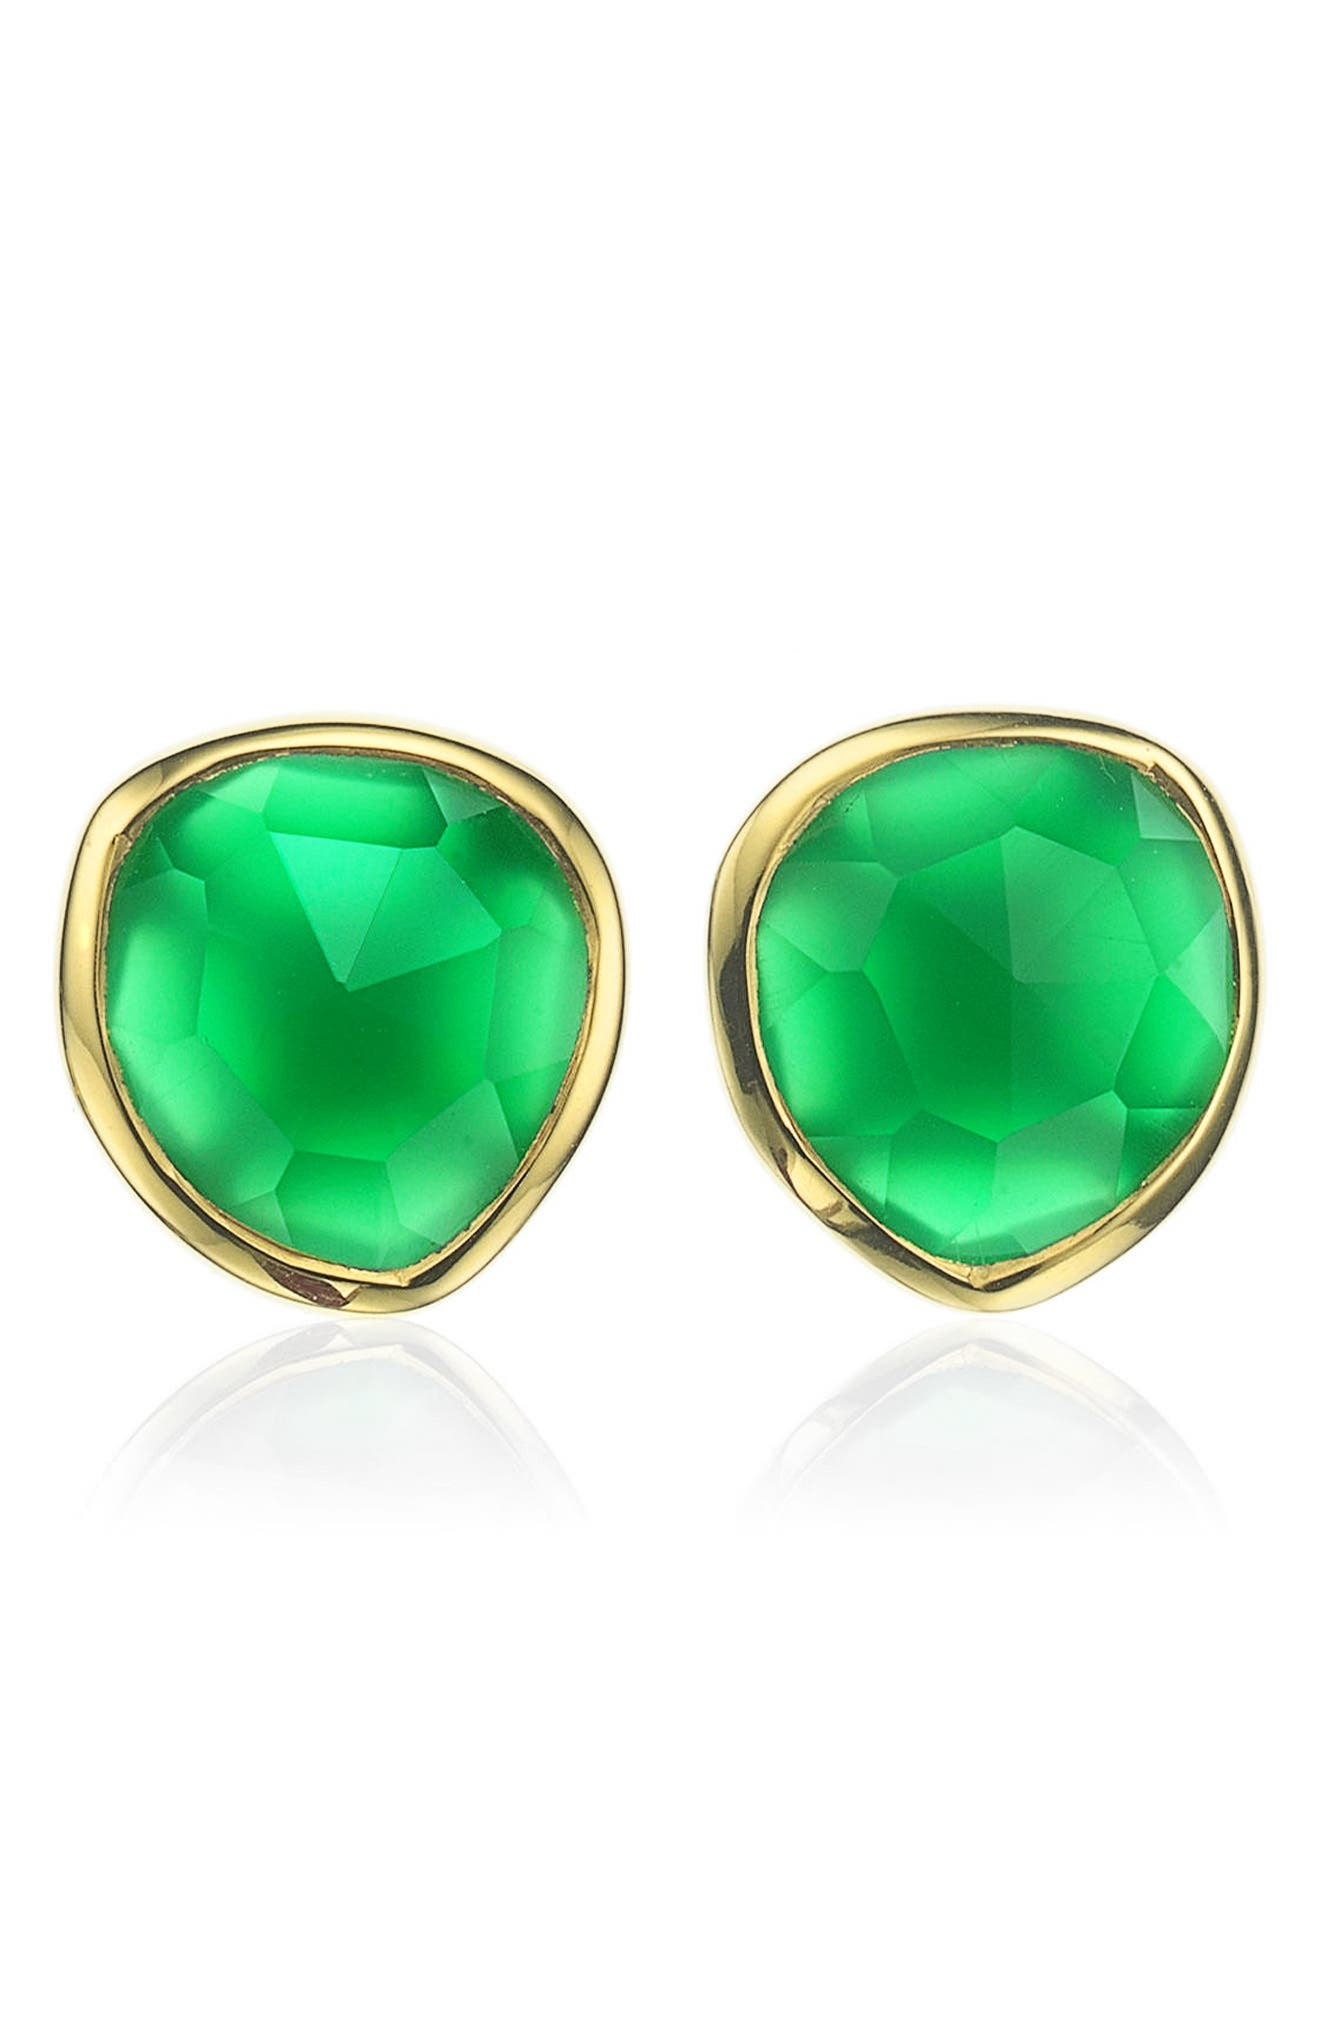 Monica Vinader 'Siren' Semiprecious Stone Stud Earrings (Nordstrom Exclusive)